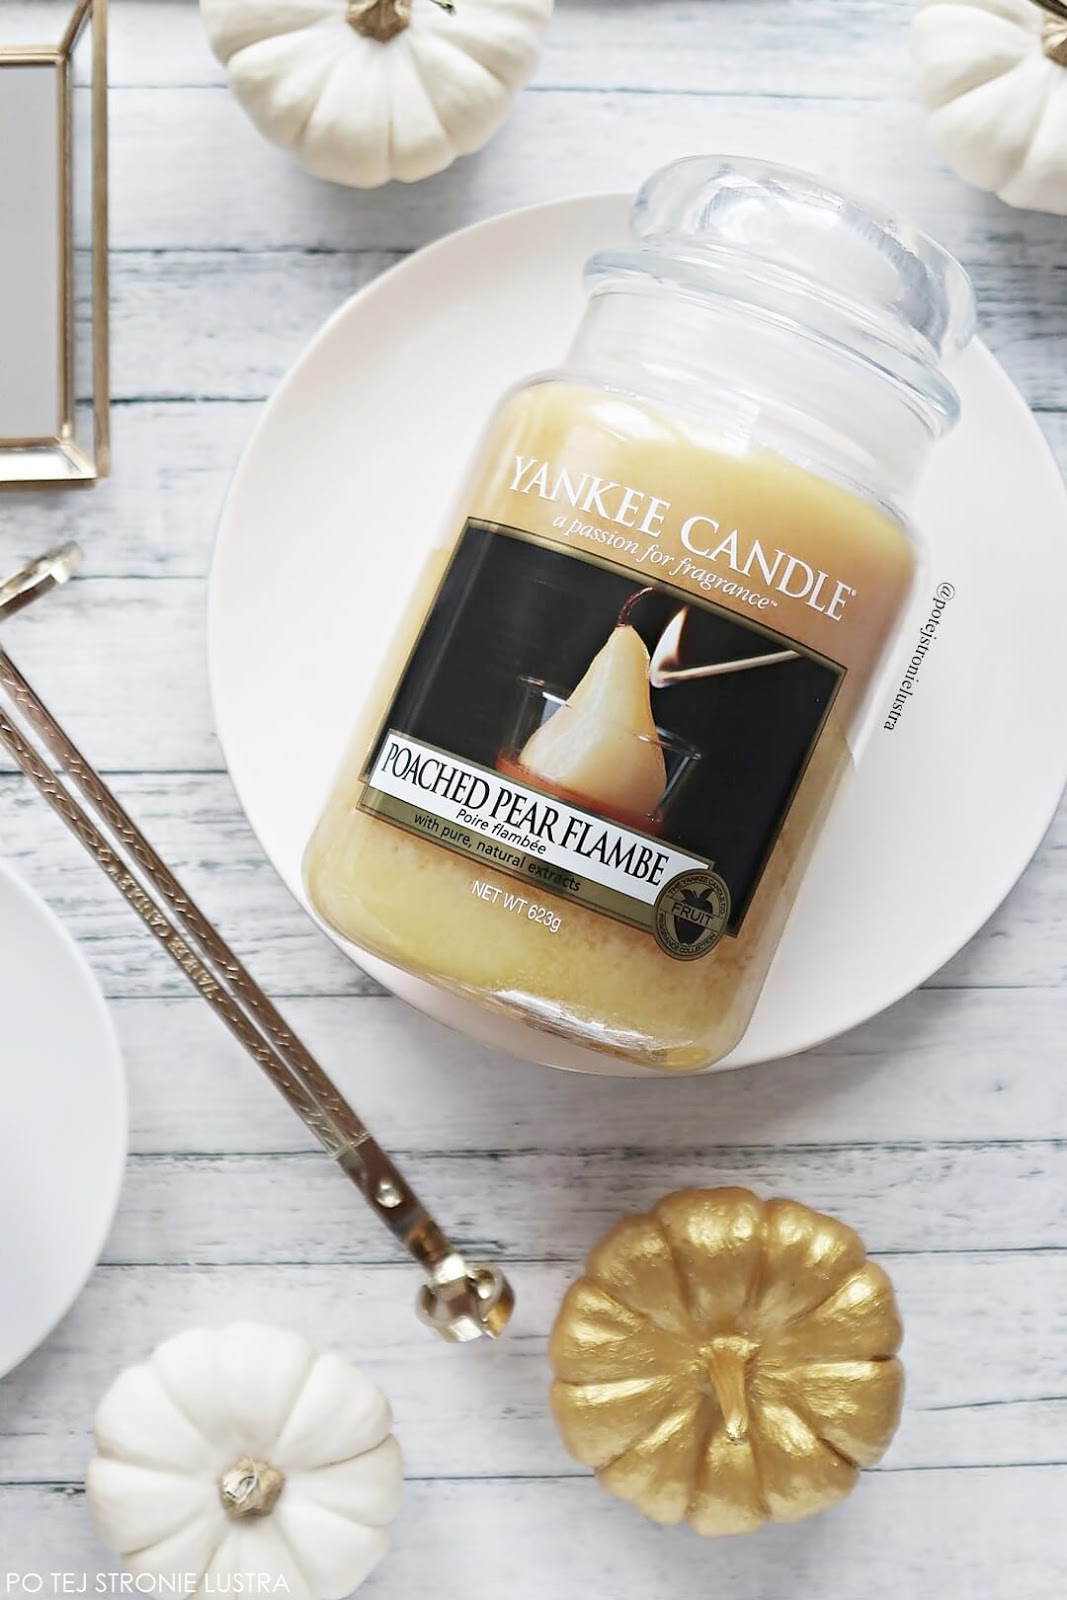 poached pear flambe yankee candle jesień 2018